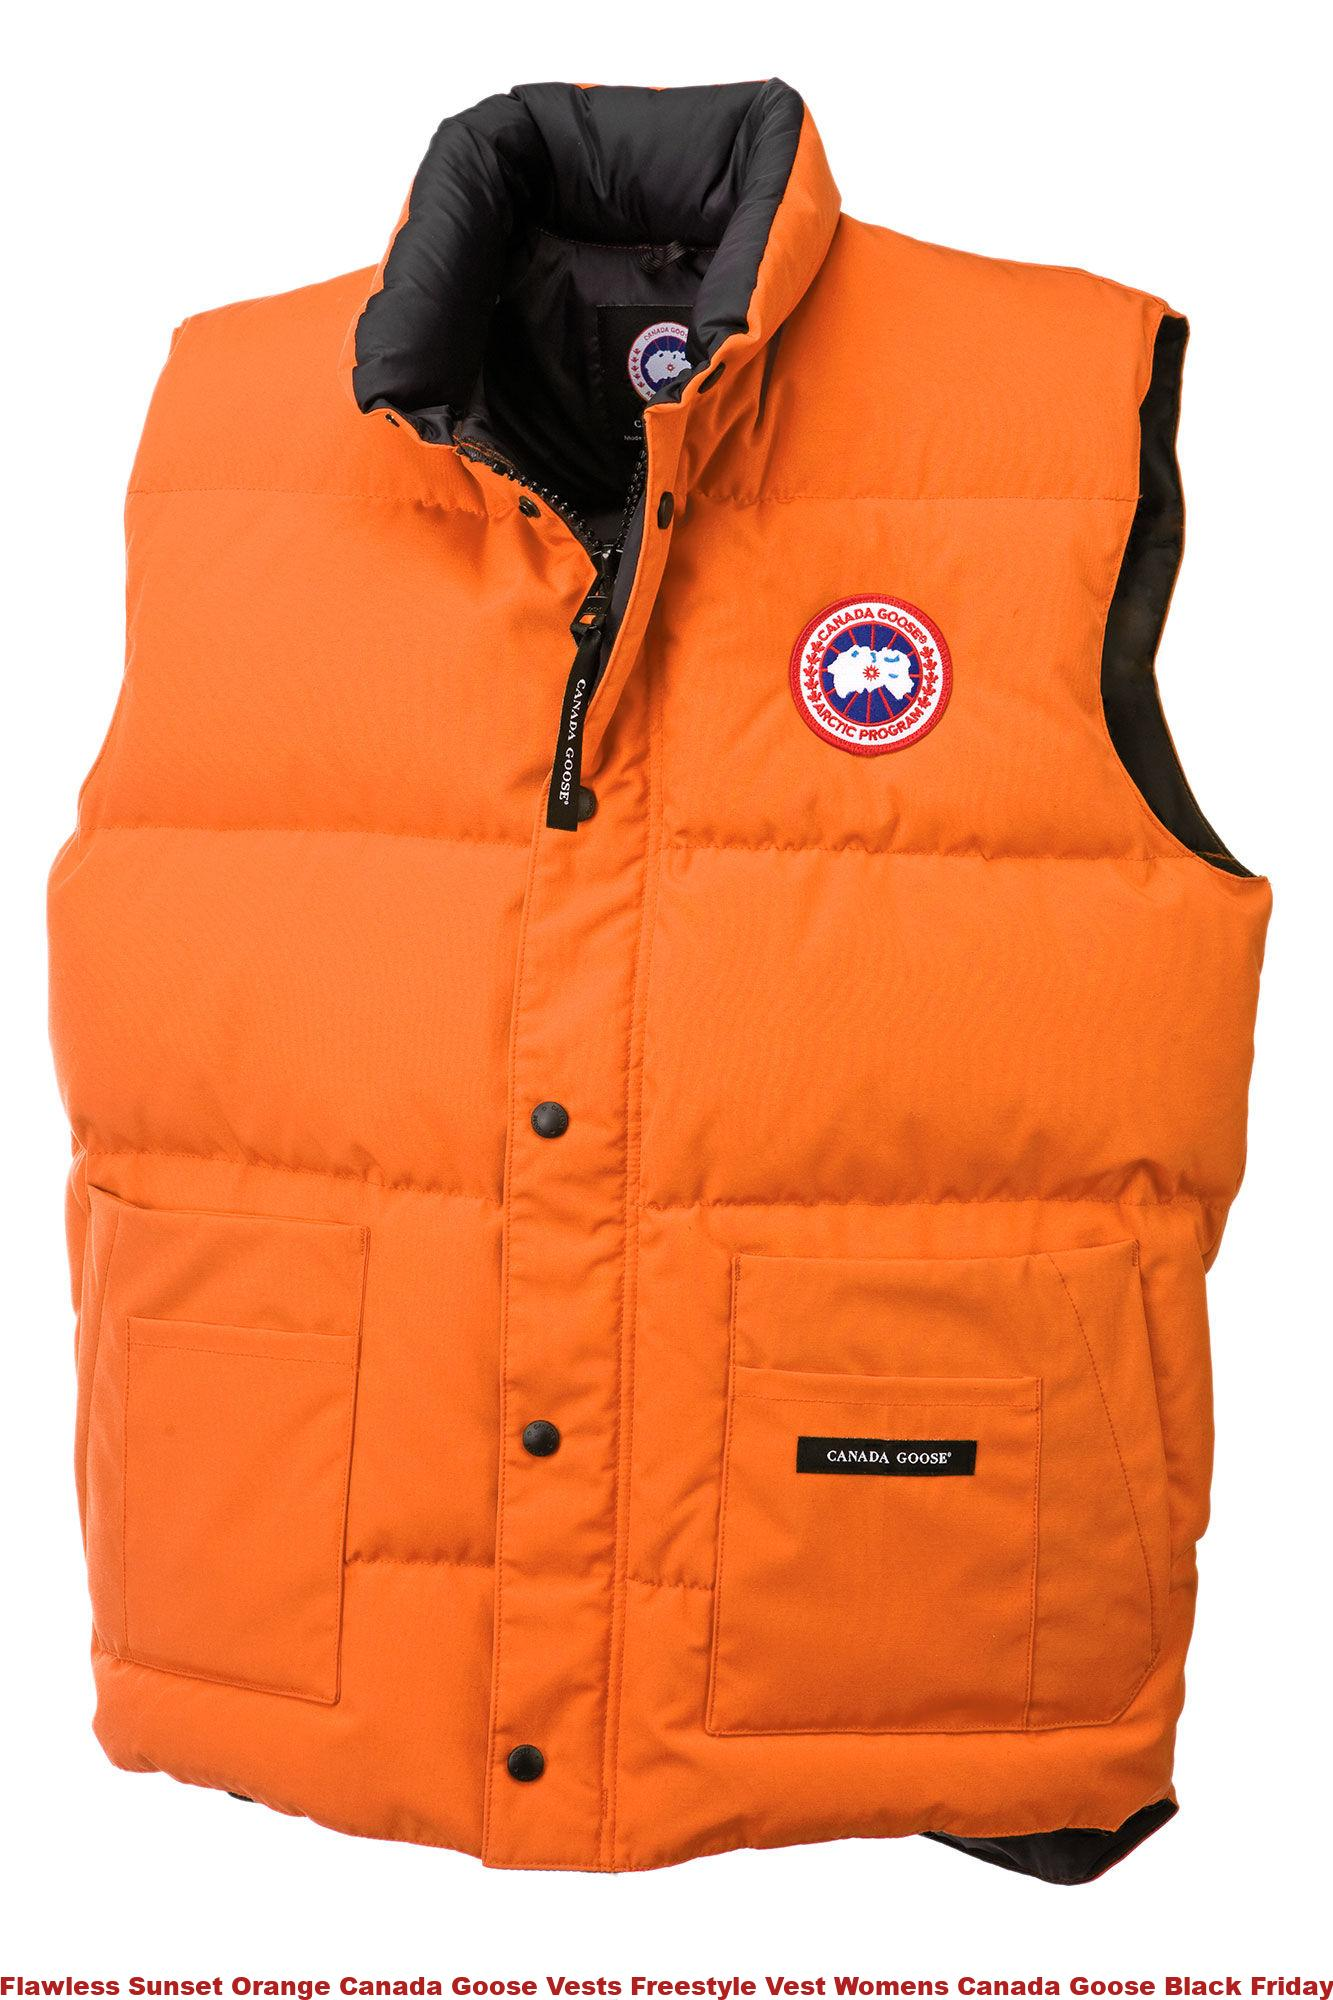 Flawless Sunset Orange Canada Goose Vests Freestyle Vest Womens Canada  Goose Black Friday 4150M d21c2dce1a